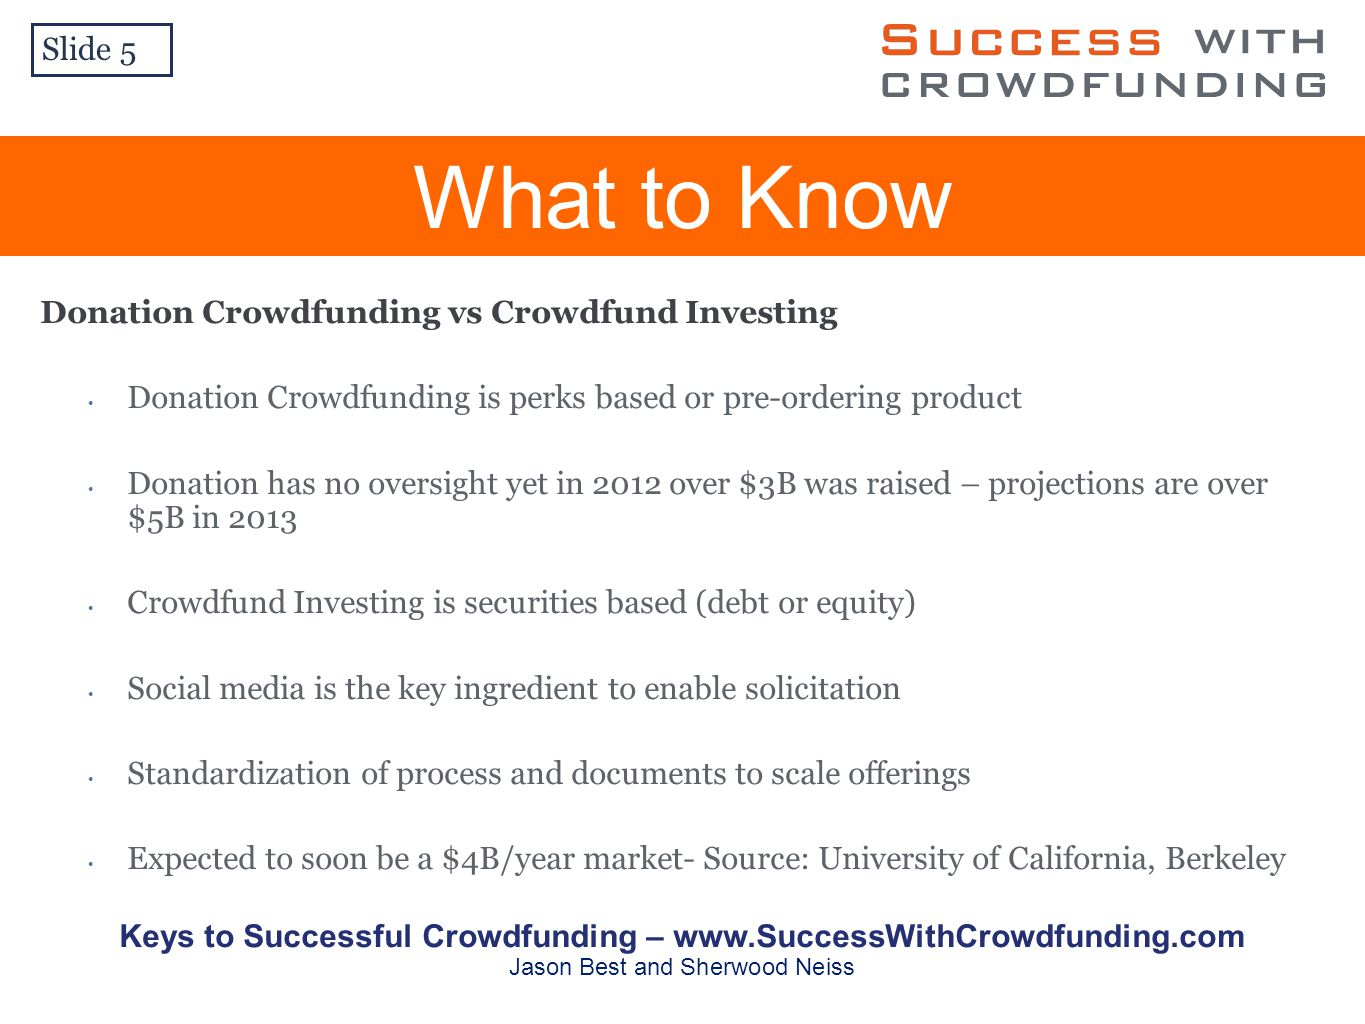 Donation Crowdfunding vs Crowdfund Investing Donation Crowdfunding is perks based or pre-ordering product Donation has no oversight yet in 2012 over $3B was raised – projections are over $5B in 2013 Crowdfund Investing is securities based (debt or equity) Social media is the key ingredient to enable solicitation Standardization of process and documents to scale offerings Expected to soon be a $4B/year market- Source: University of California, Berkeley What to Know Slide 5 Keys to Successful Crowdfunding –   Jason Best and Sherwood Neiss